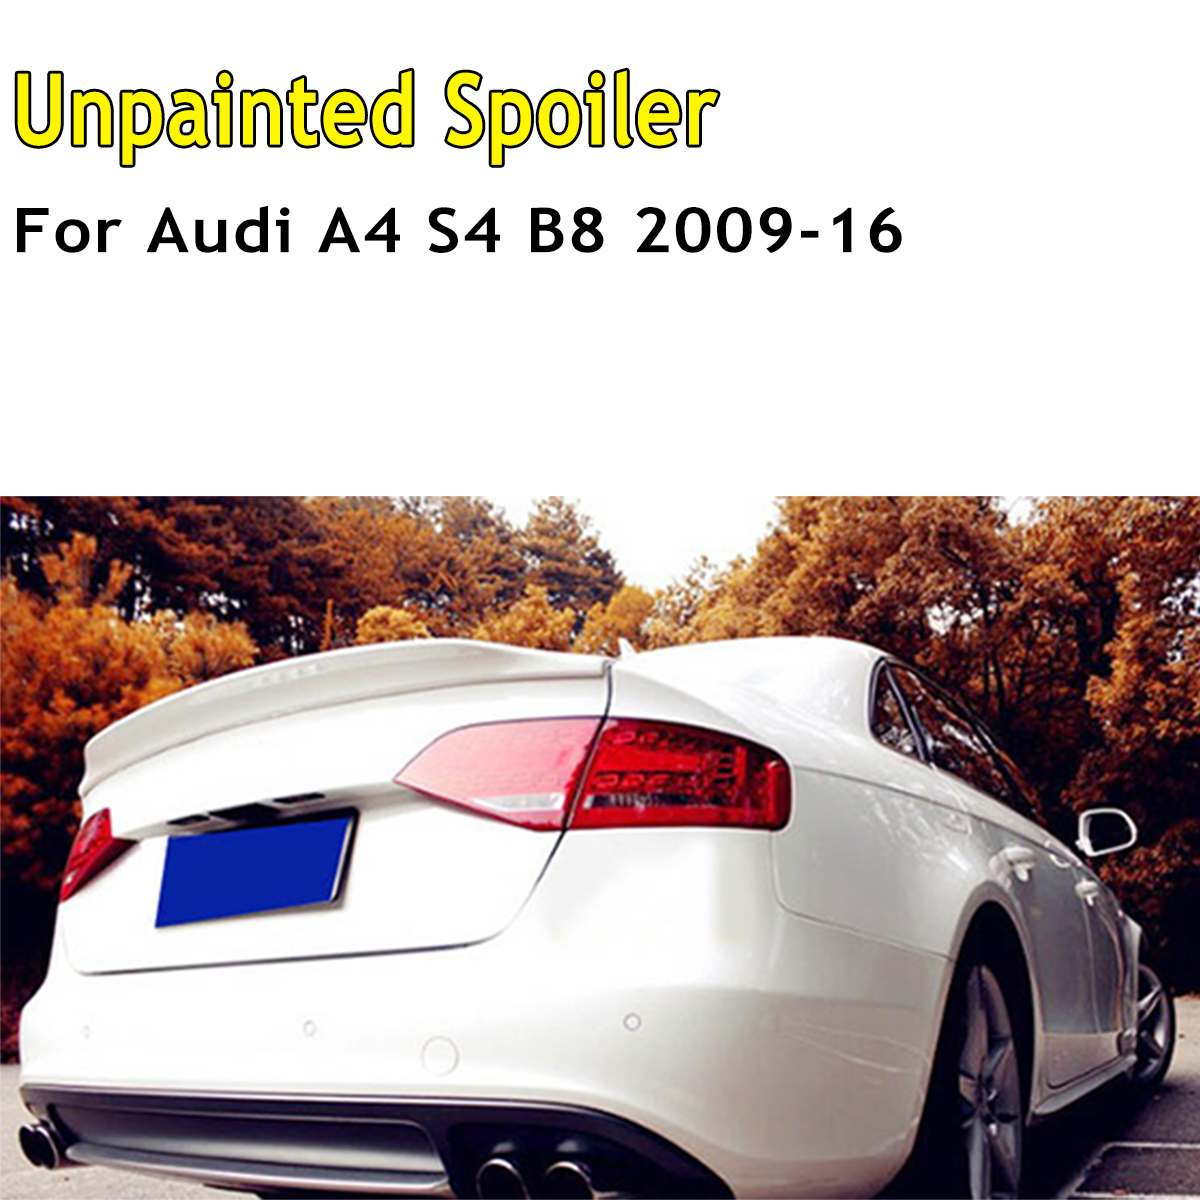 ABS Unpainted Primed C Style Rear Trunk Lid Spoiler Wing Lid For Audi A4 S4 B8 2009 2010 2011 2012 2013 2014 2015 2016ABS Unpainted Primed C Style Rear Trunk Lid Spoiler Wing Lid For Audi A4 S4 B8 2009 2010 2011 2012 2013 2014 2015 2016